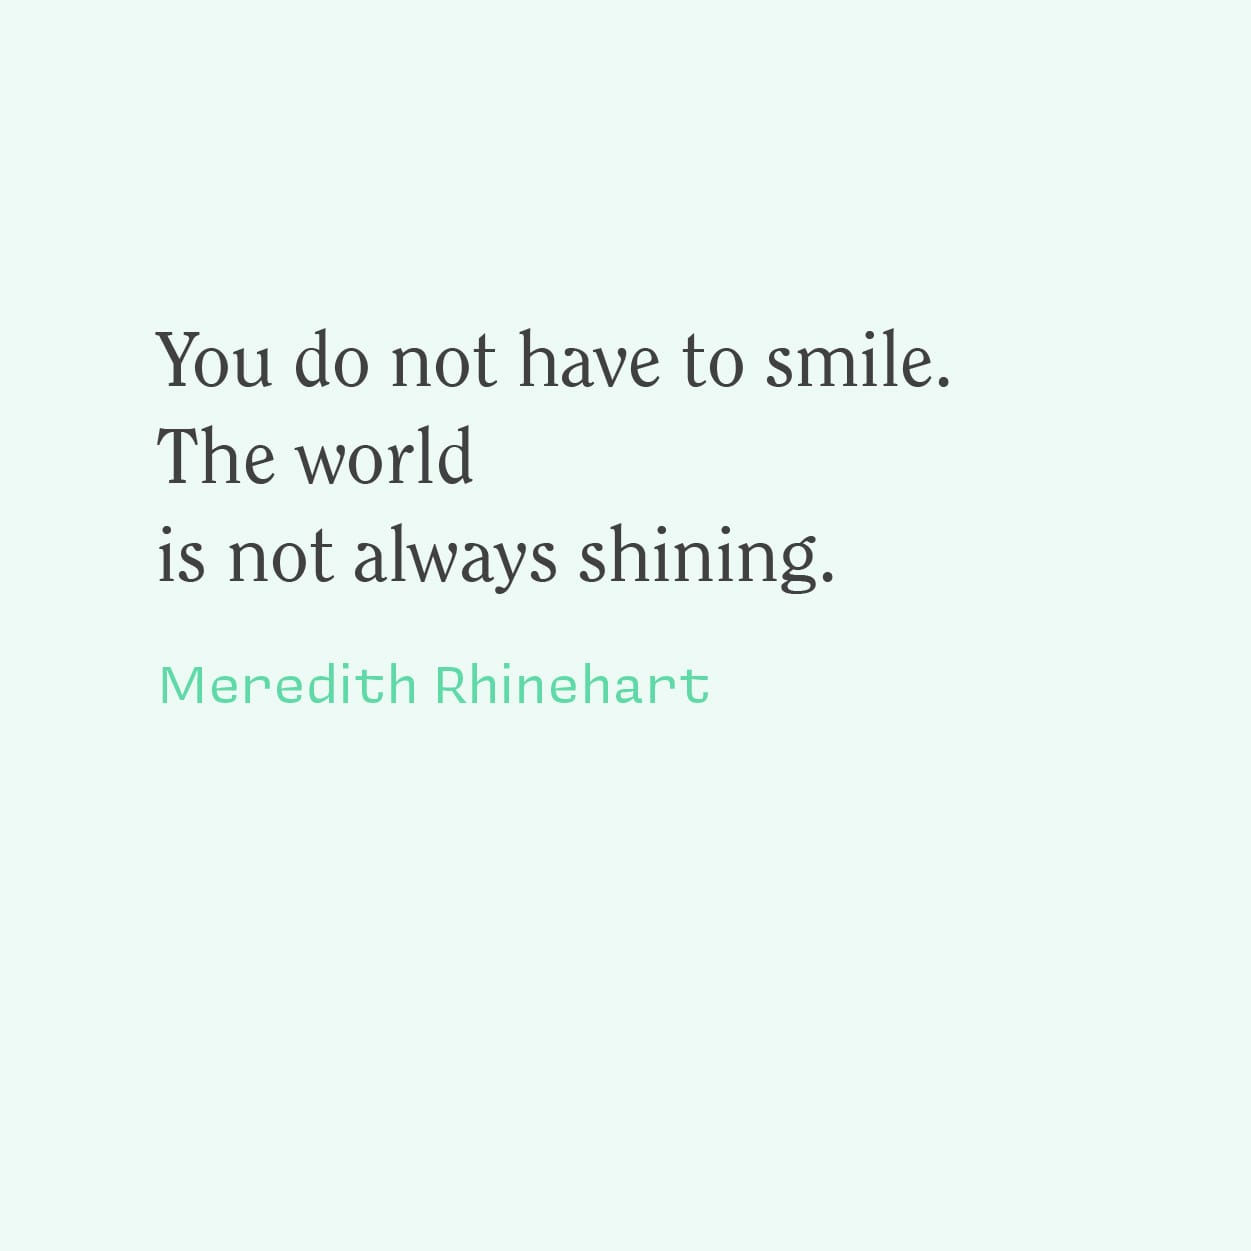 You Do Not Have to Smile